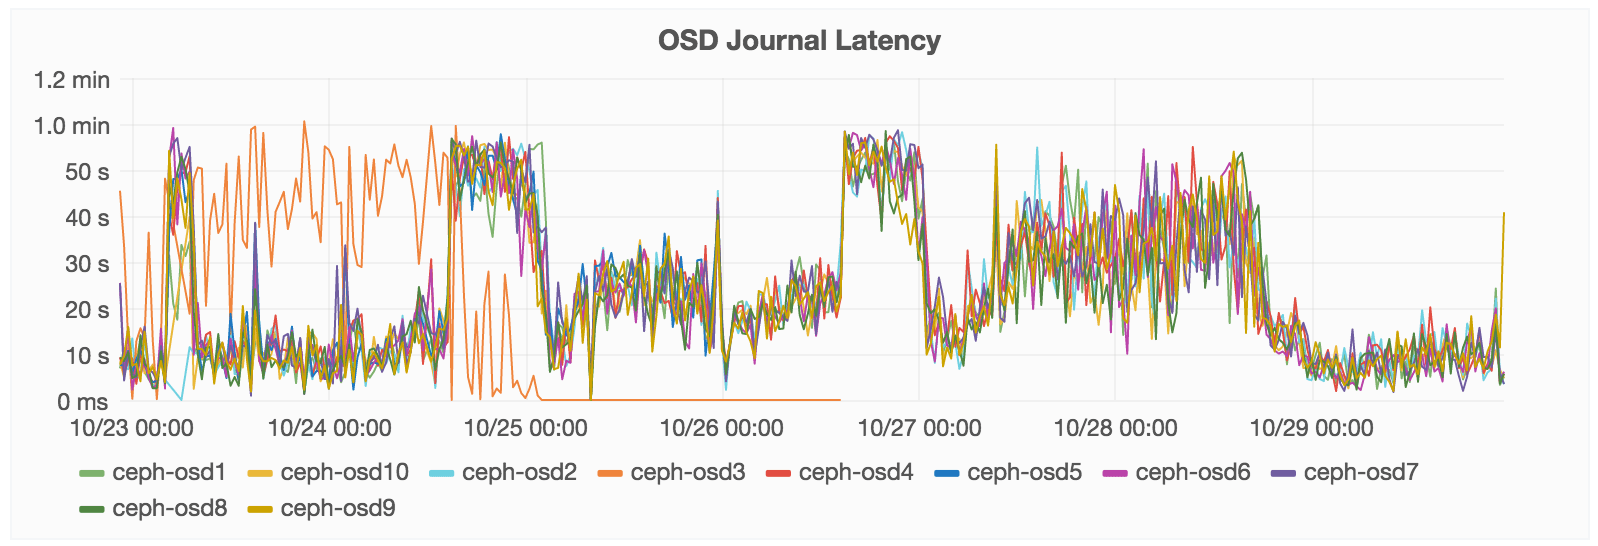 osd-journal-latency